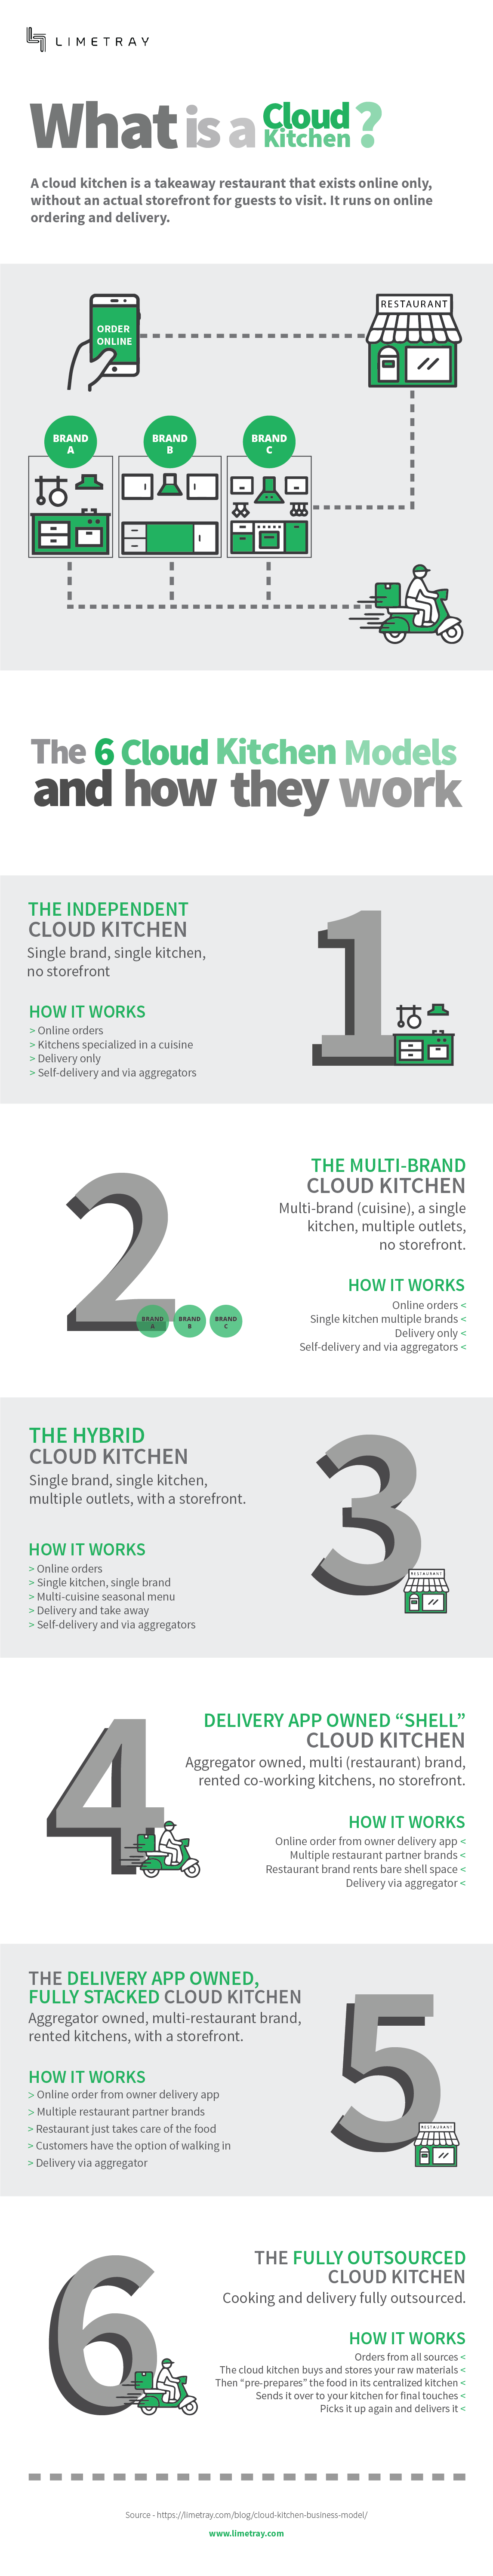 The 6 Cloud Kitchen Business Models and How They Work